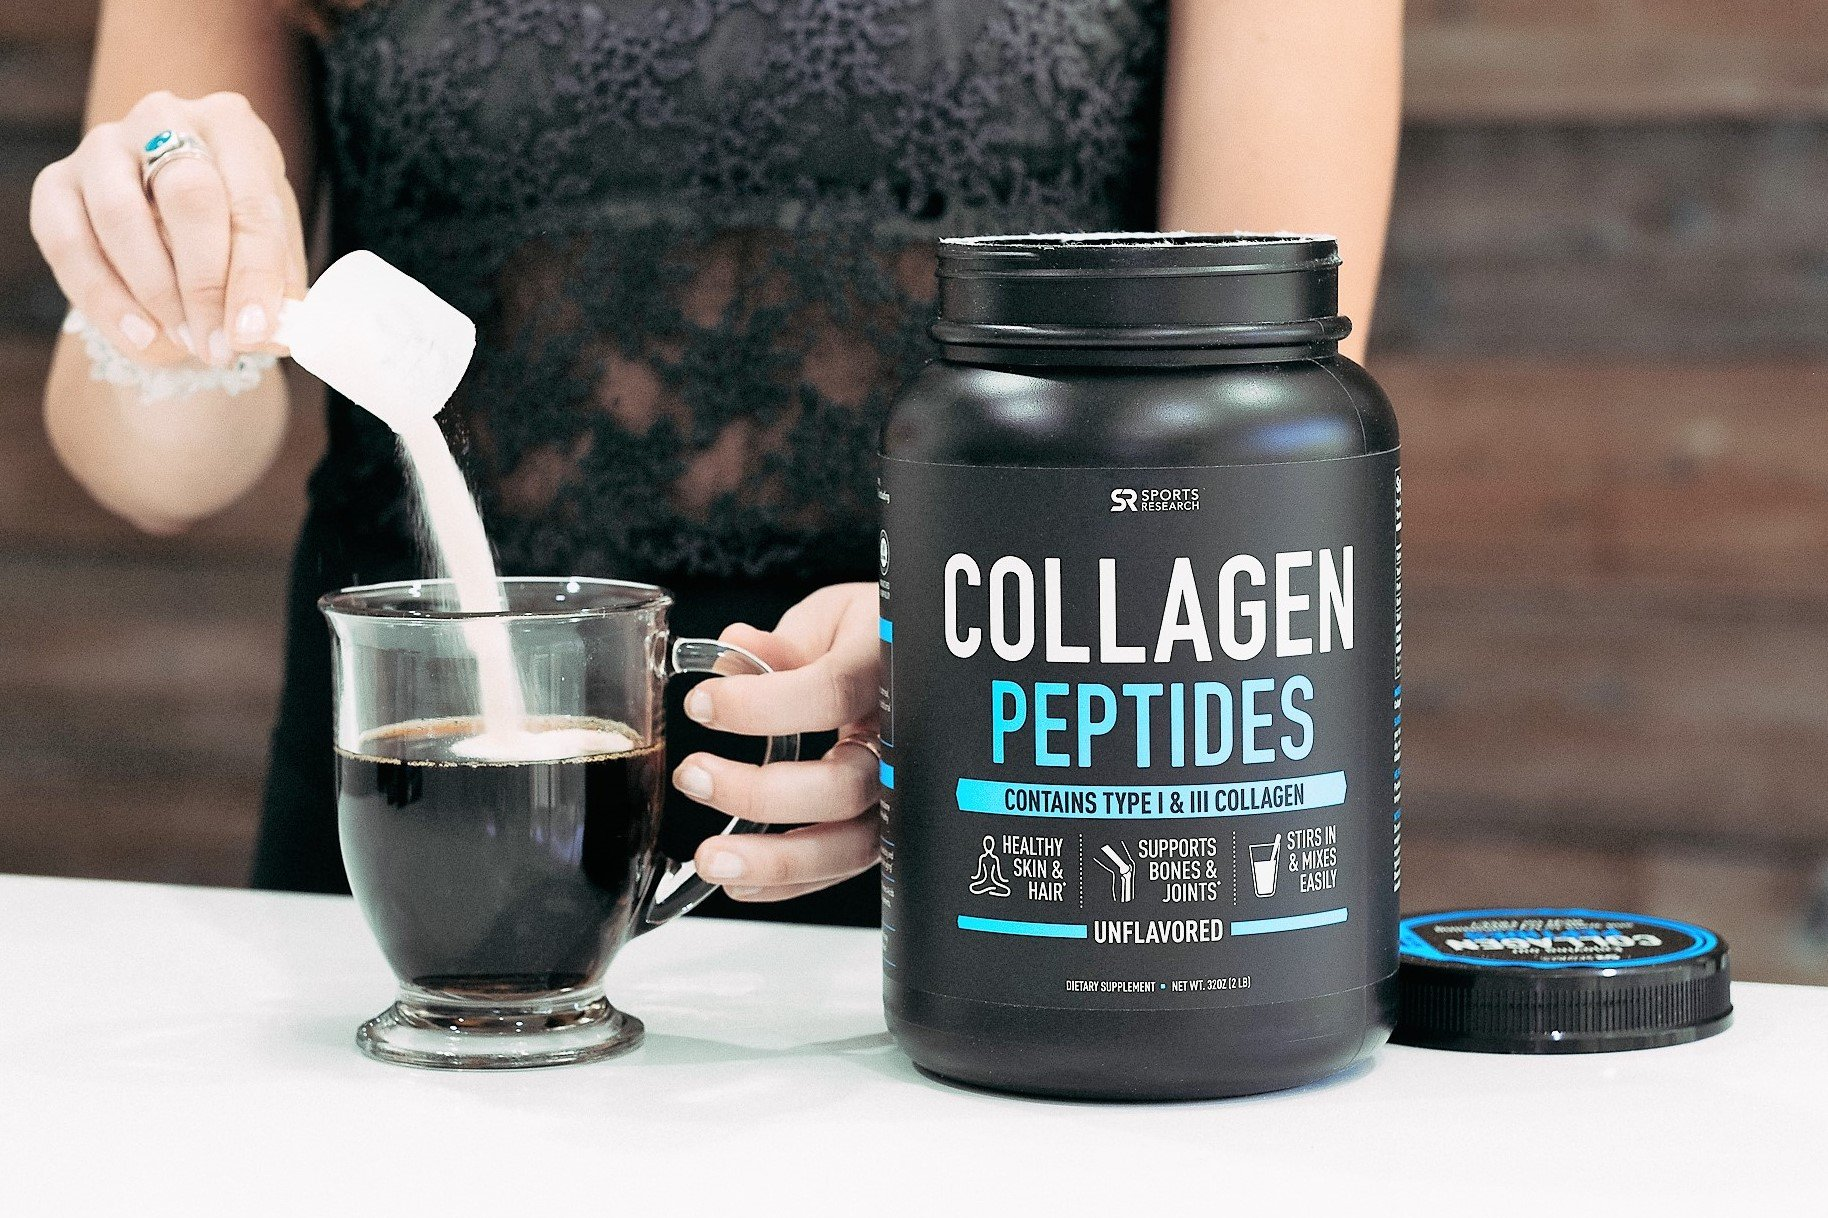 Collagen Peptides Powder 'XL' Jar 32oz | Grass-Fed, Certified Paleo Friendly, Non-GMO and Gluten Free - Unflavored by Sports Research (Image #2)